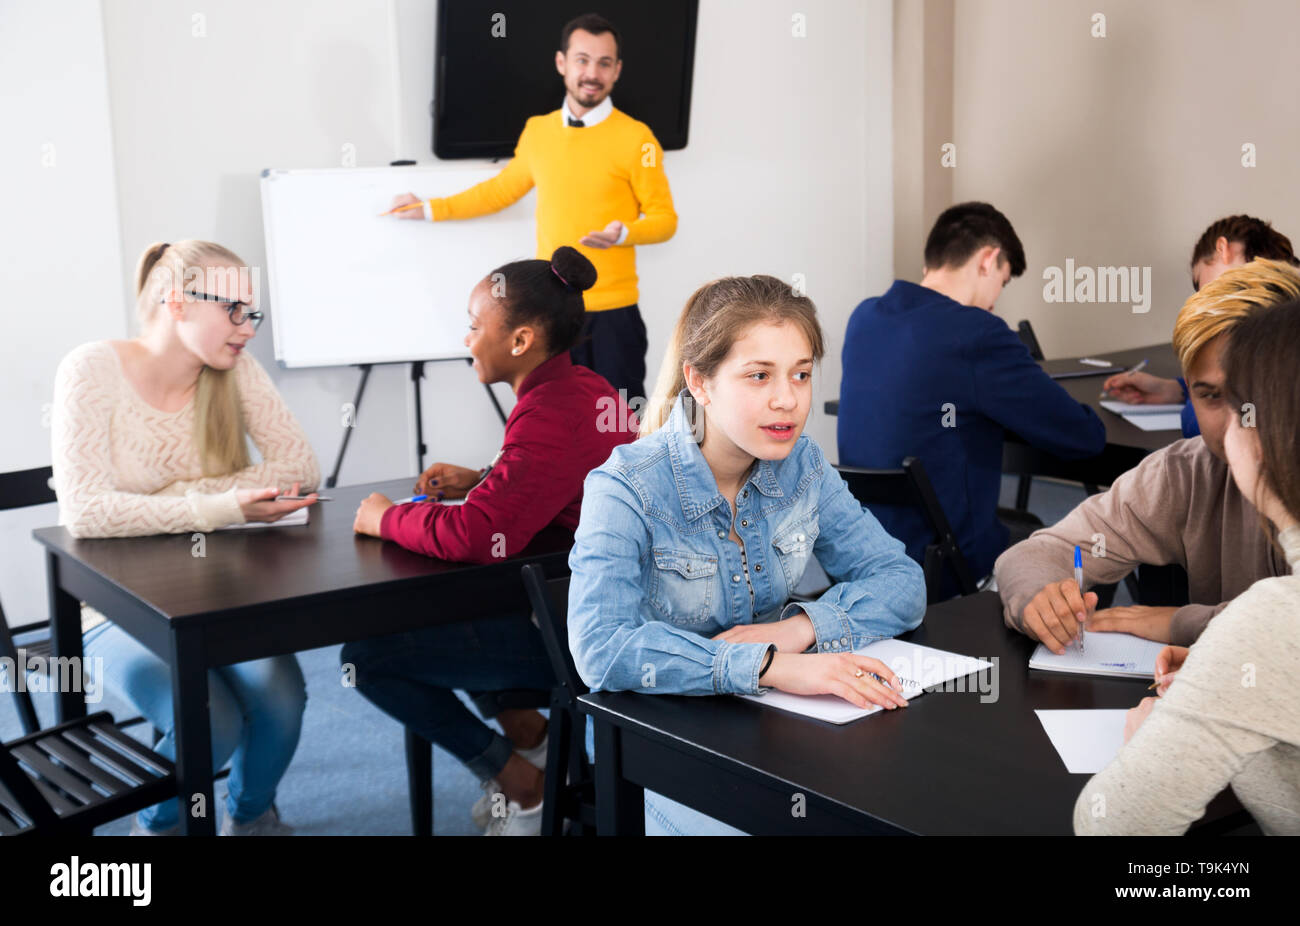 Smiling classmates working in groups to complete task during class - Stock Image